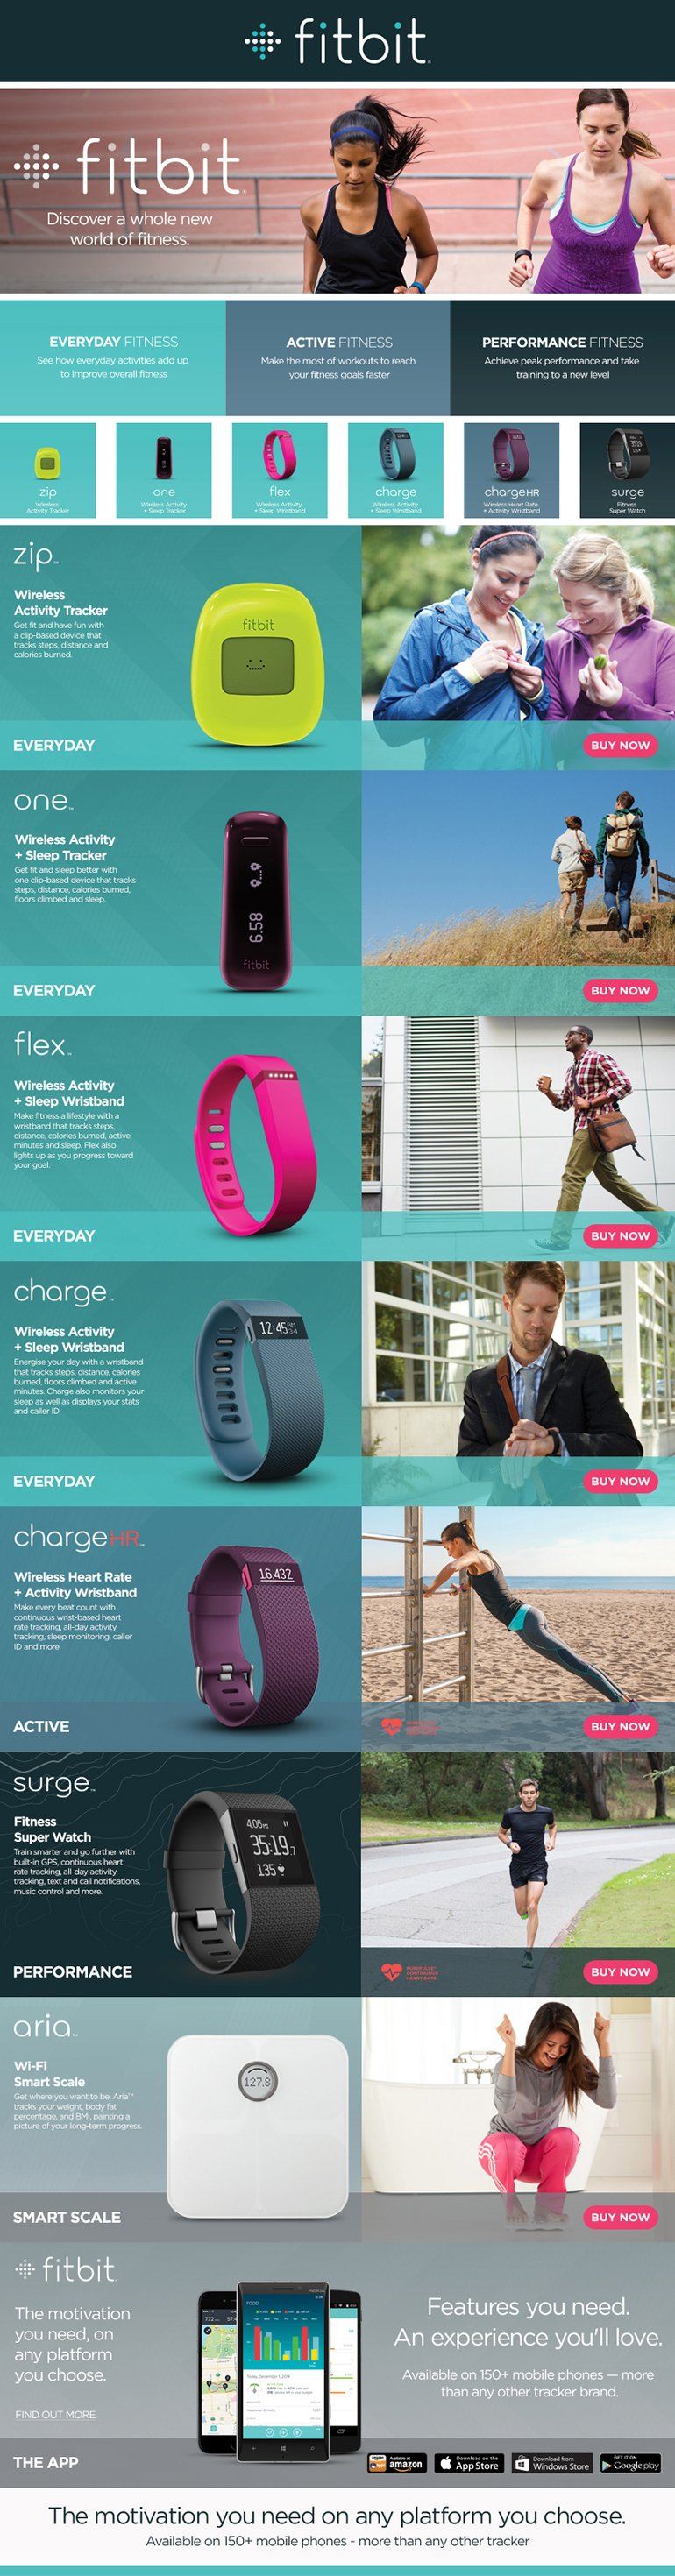 Fitbit Brand Store - Mobile Friendly